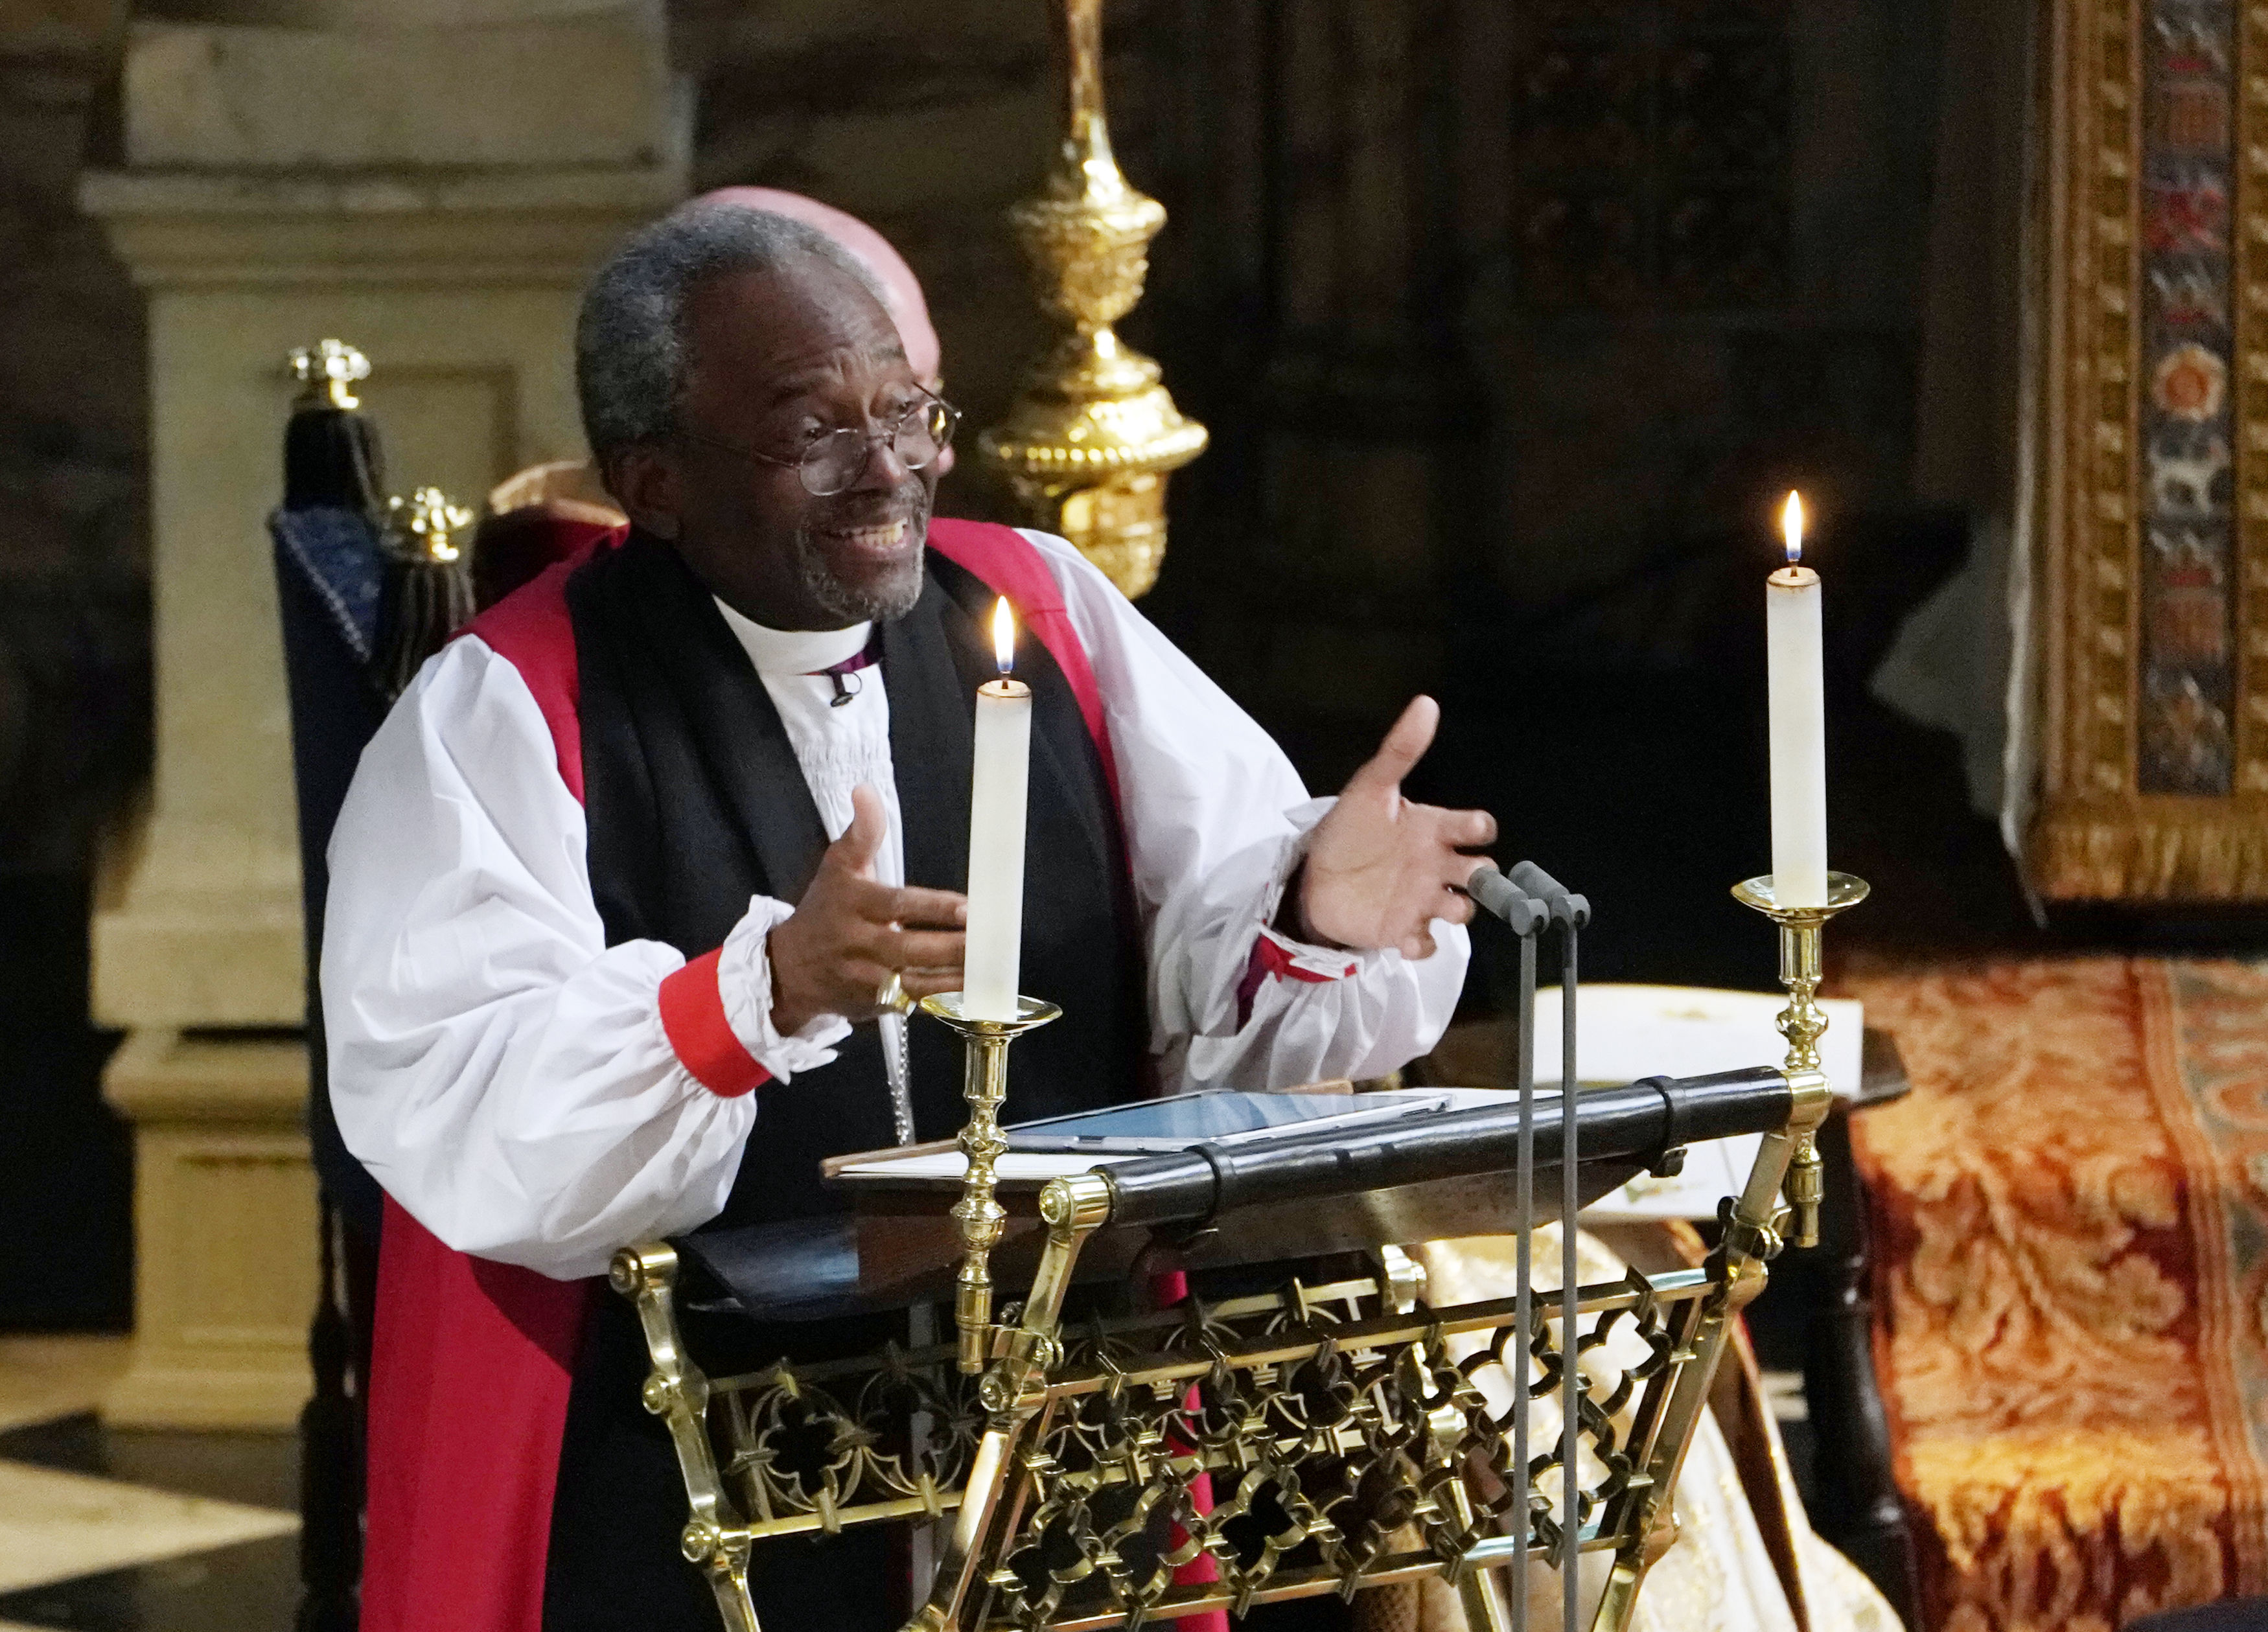 Bishop Michael Curry just stole the show with his sermon at the Royal Wedding